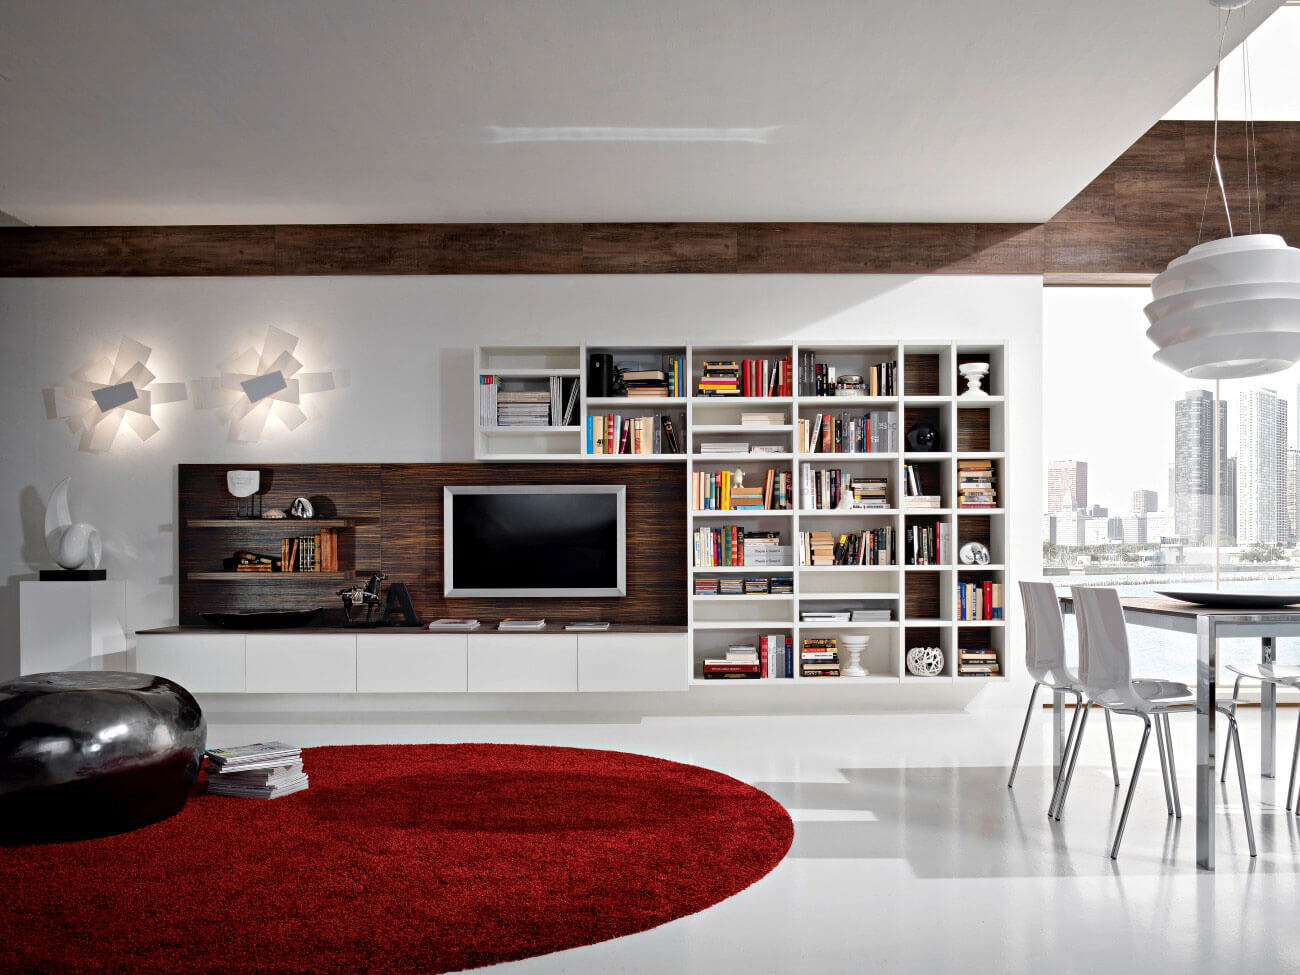 Wall Mounted Tv Unit Designs Italian Kitchen Cabinets European Kitchen Cabinets La Modern